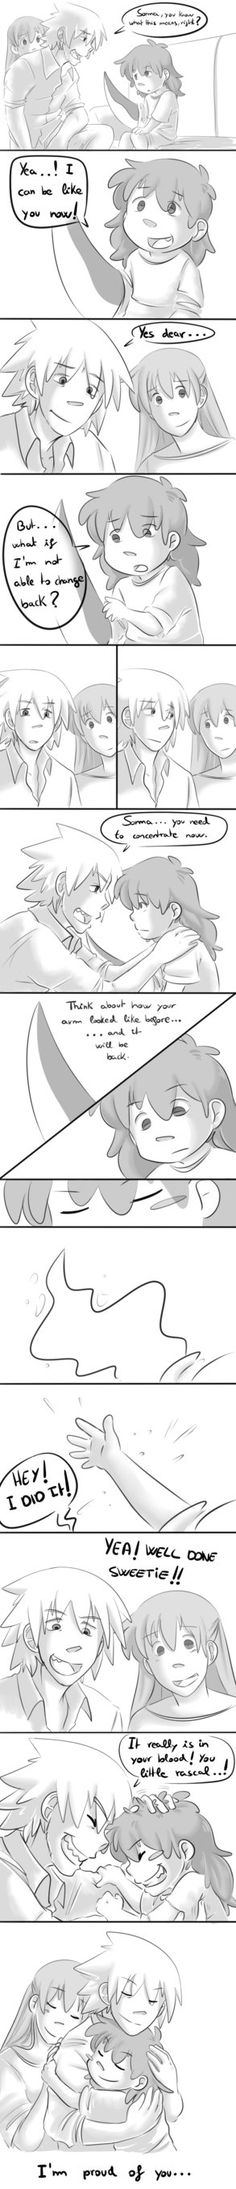 Still me (part 3) by KeysaMoguri on deviantART